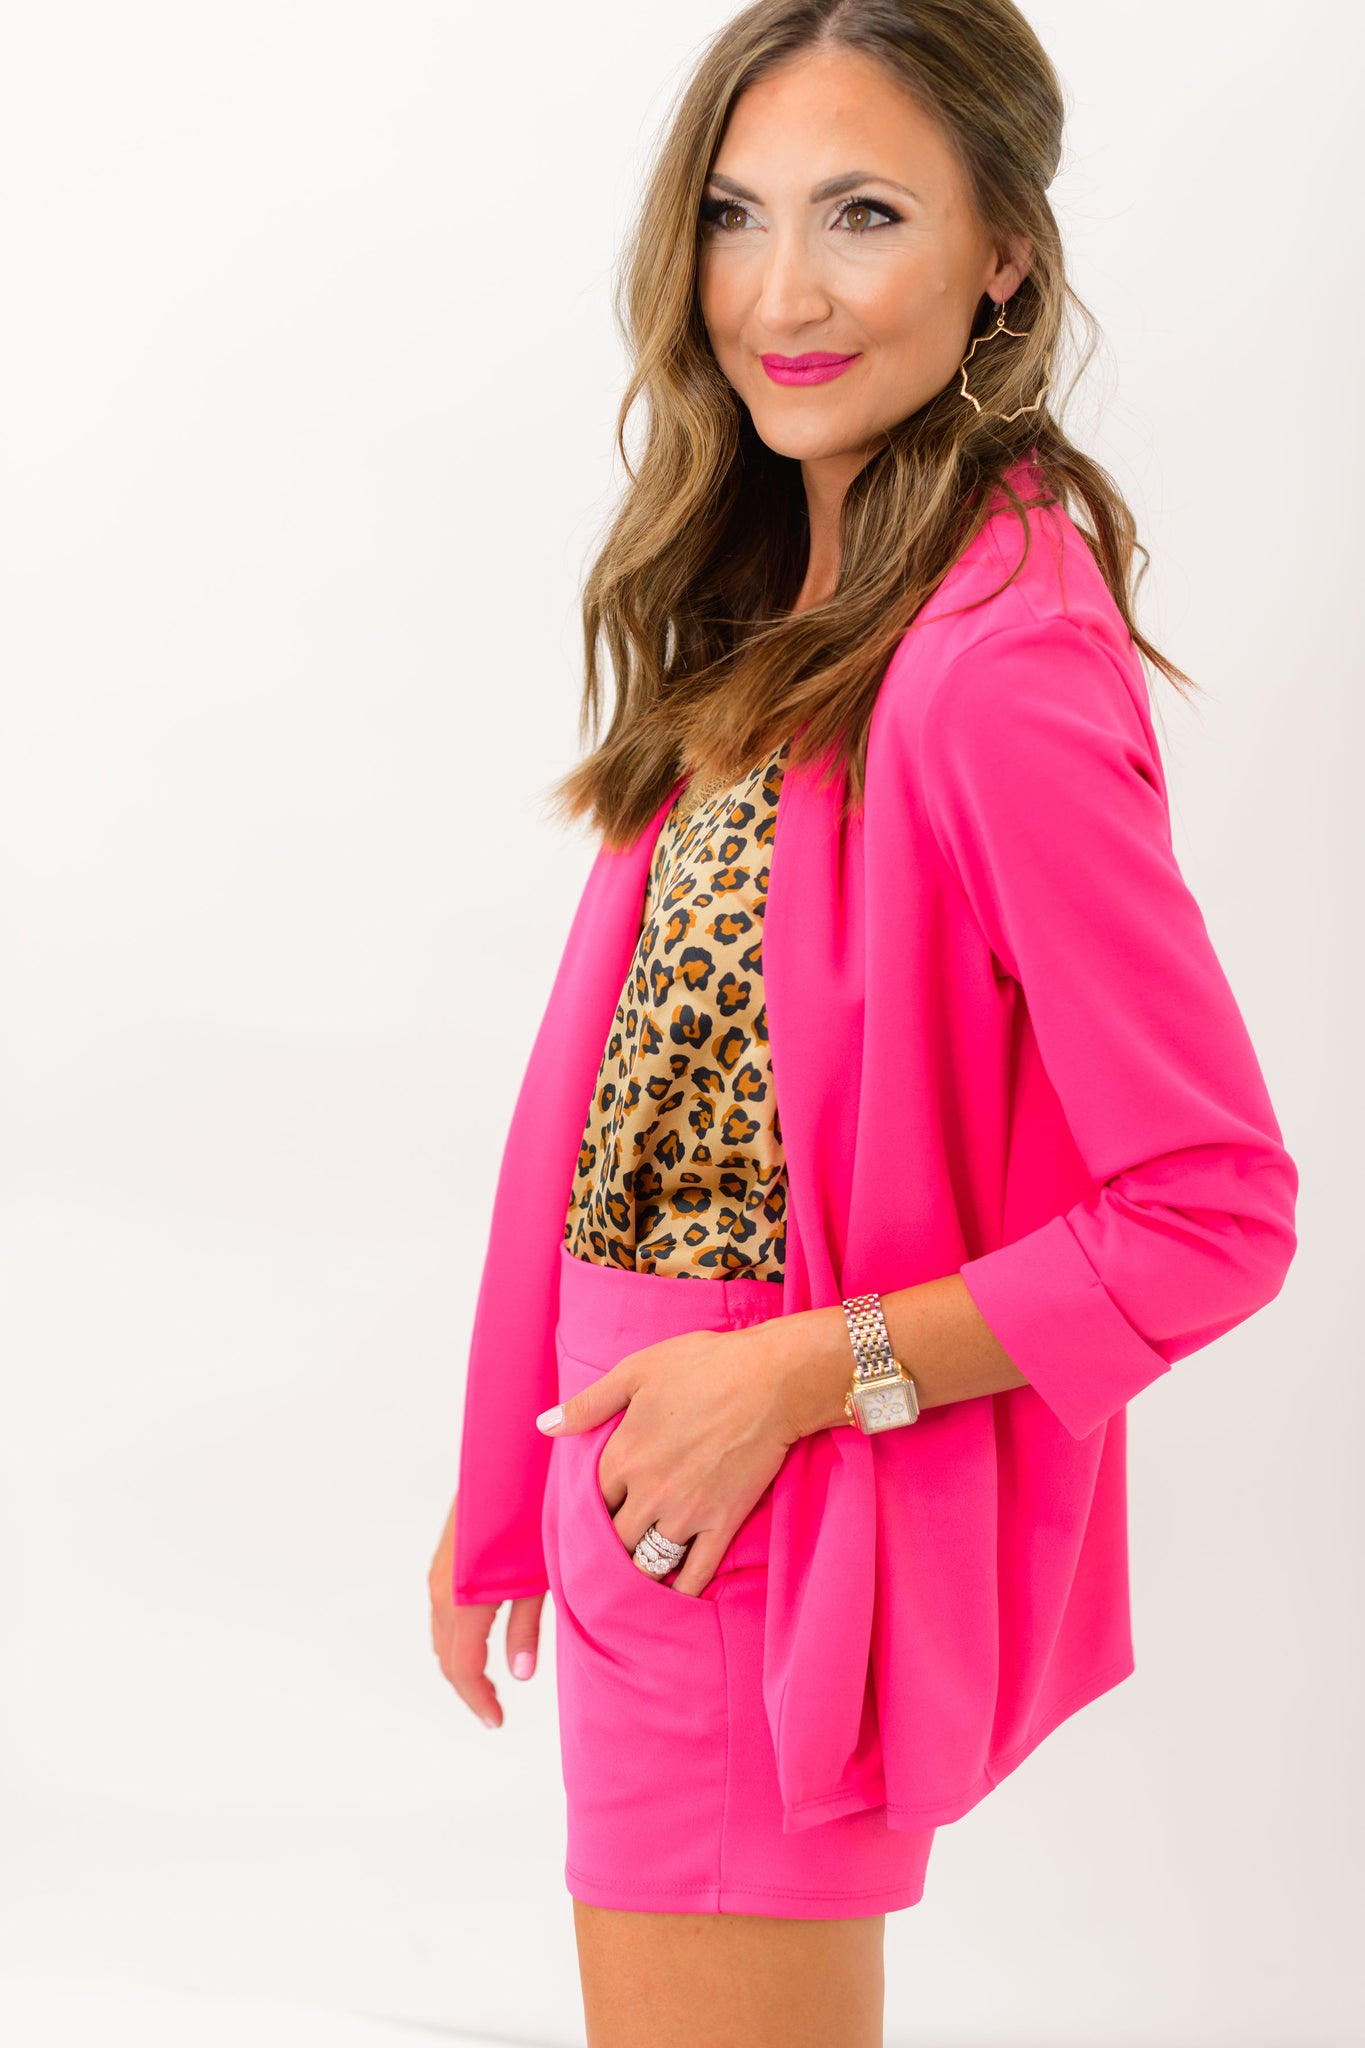 Hot Pink Blazer and Shorts Set